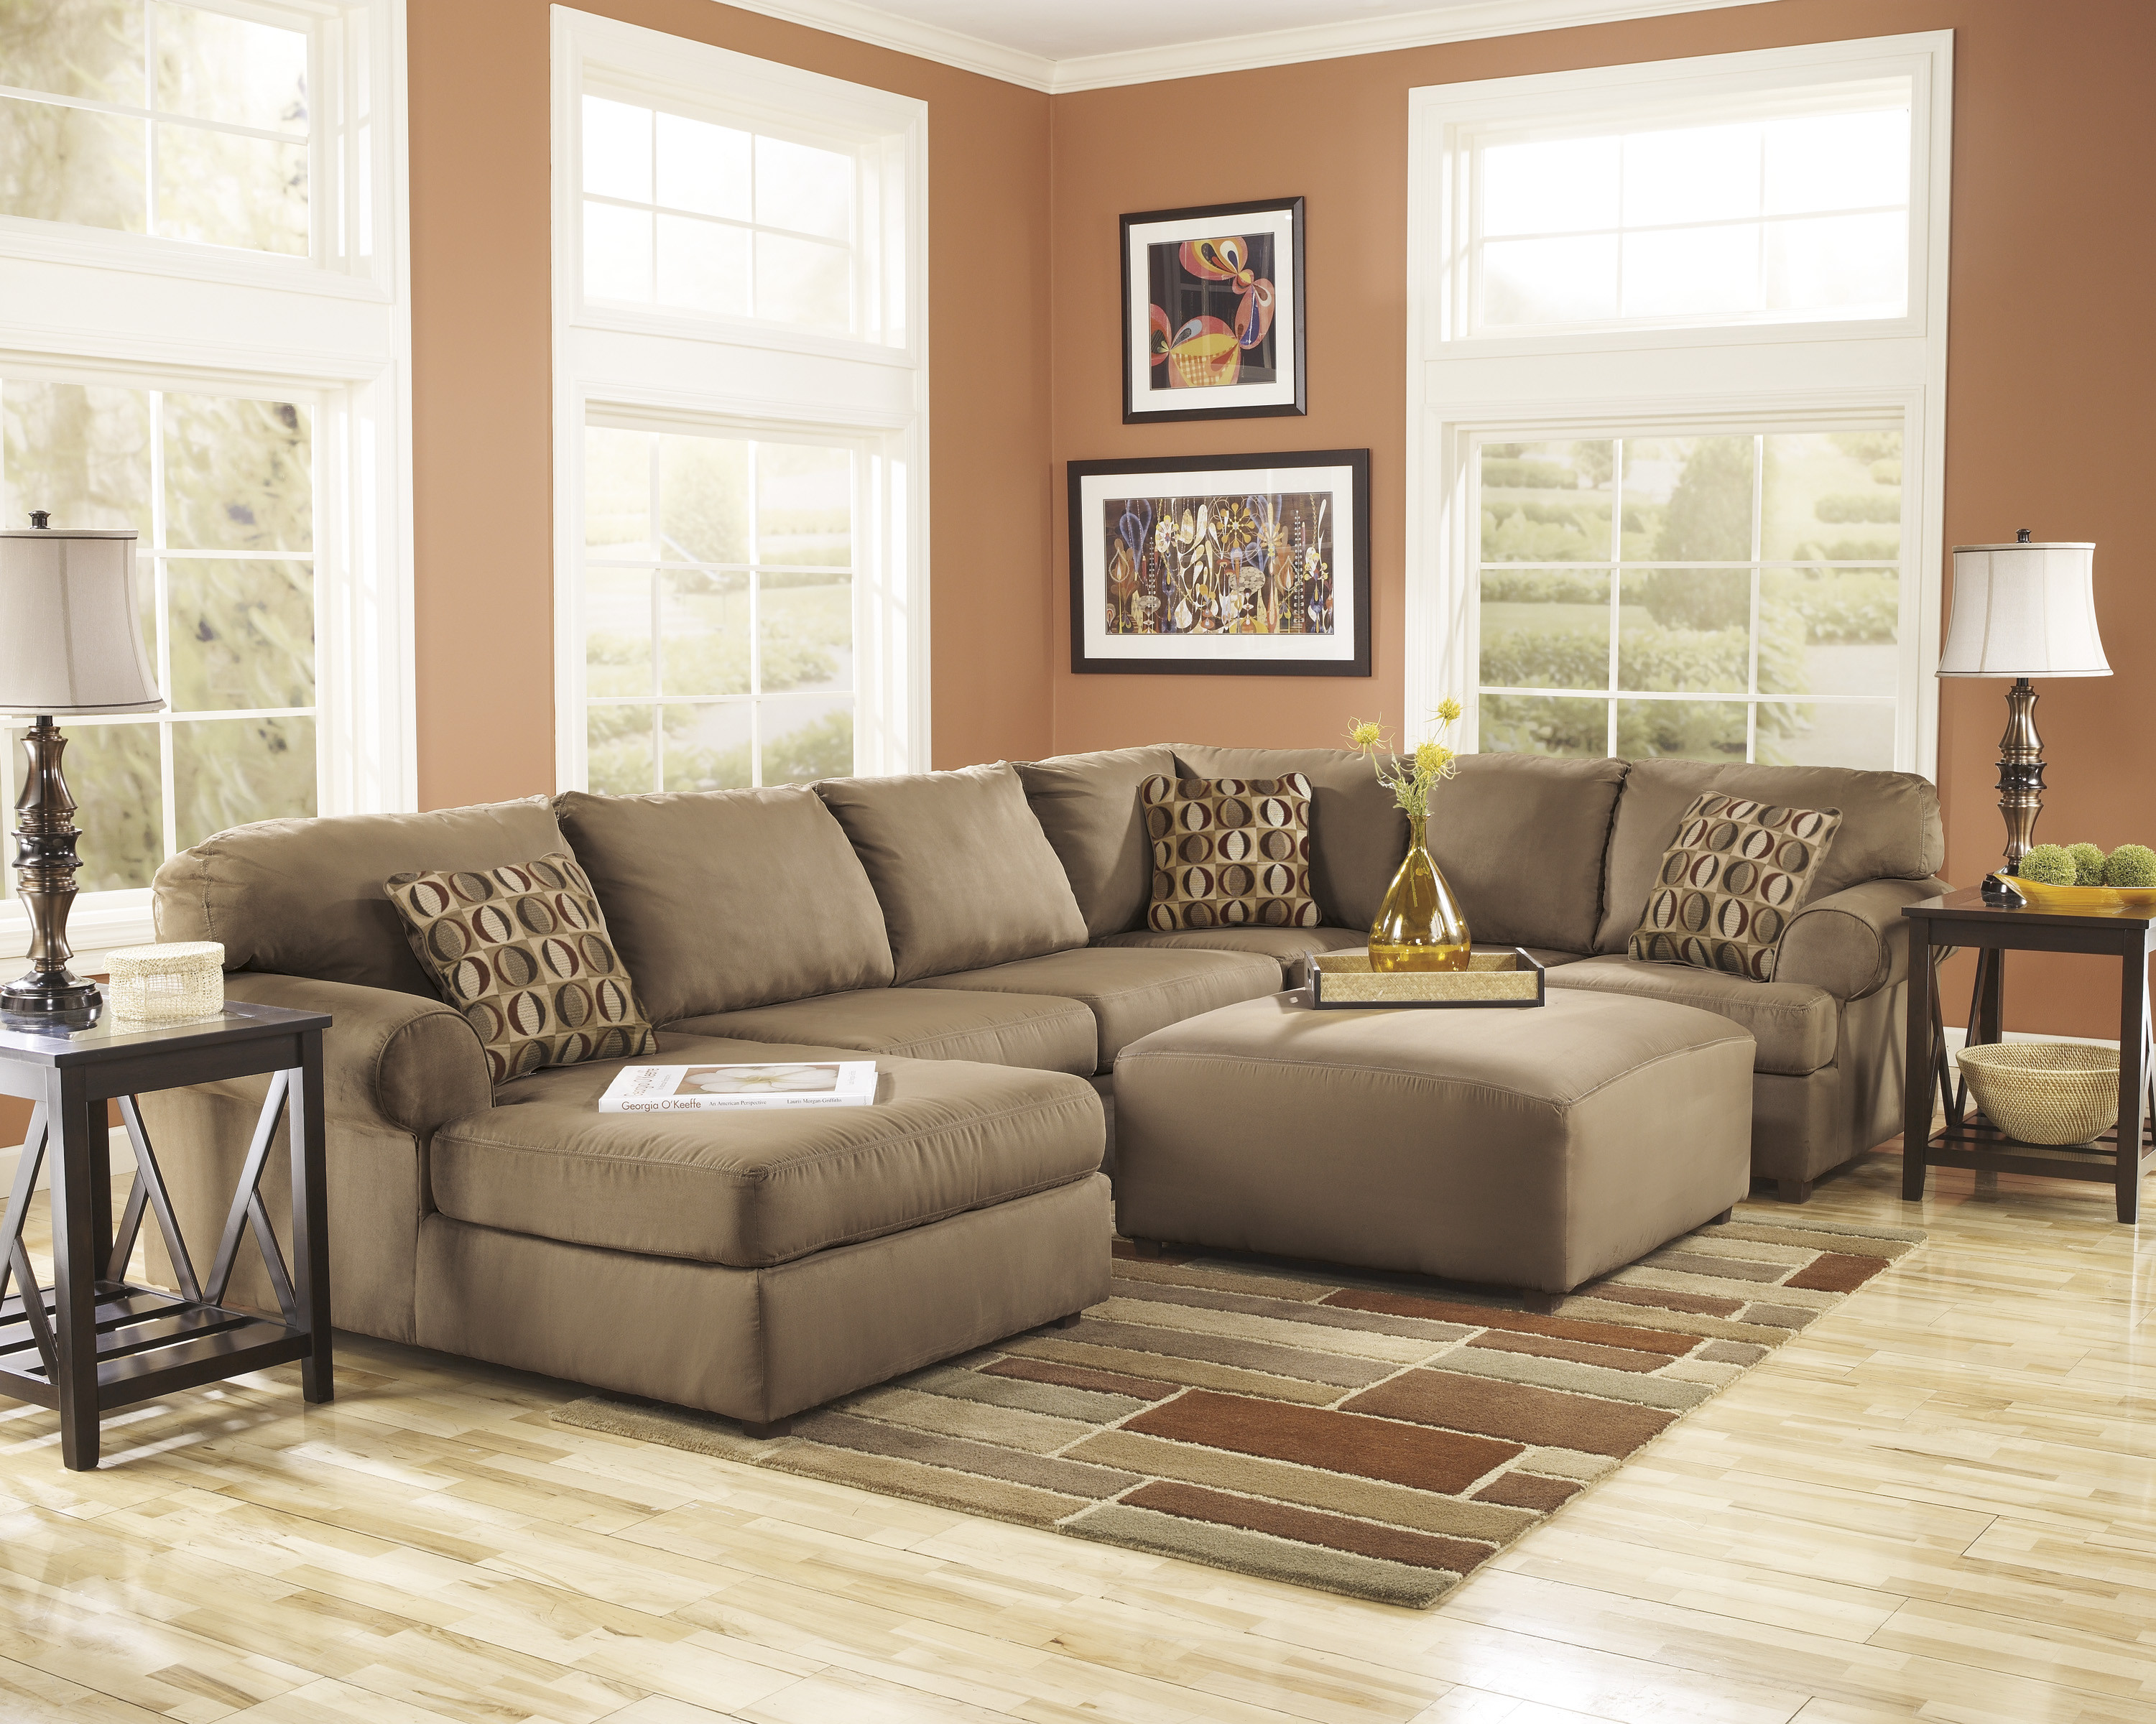 Best ideas about Family Room Sectionals . Save or Pin Cheap Ashley Furniture Living Room Sets Glendale CA A Now.